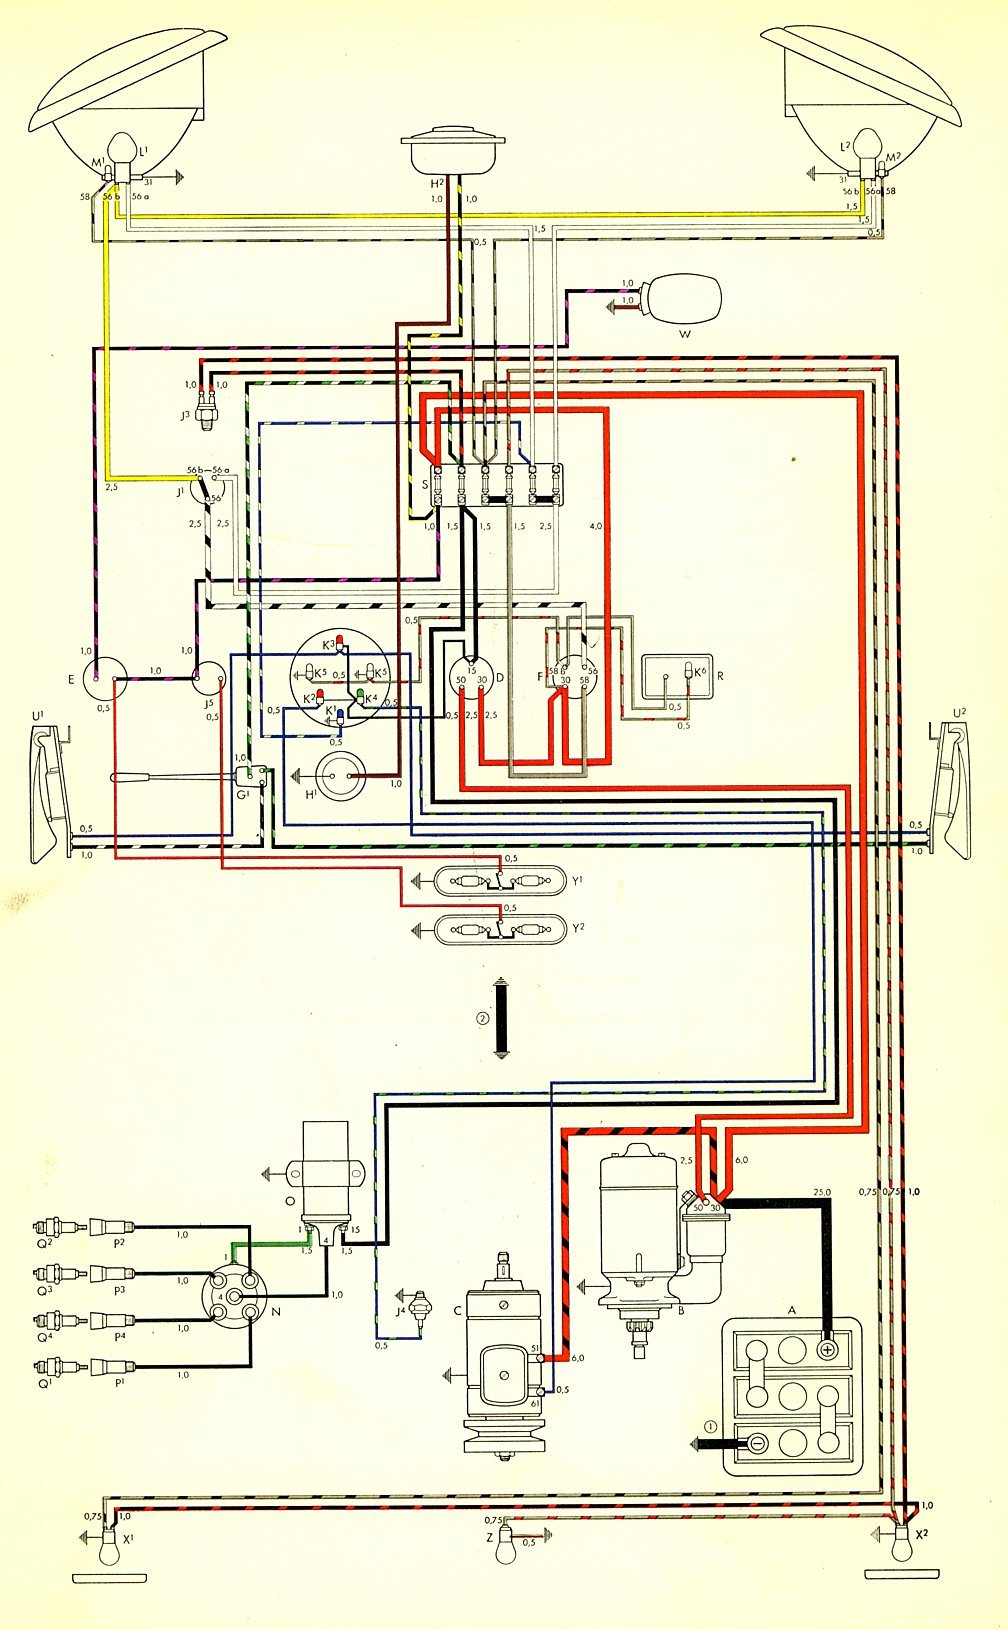 thesamba com type 2 wiring diagrams rh thesamba com Bus Diagram School Bus Air Brake System Diagram